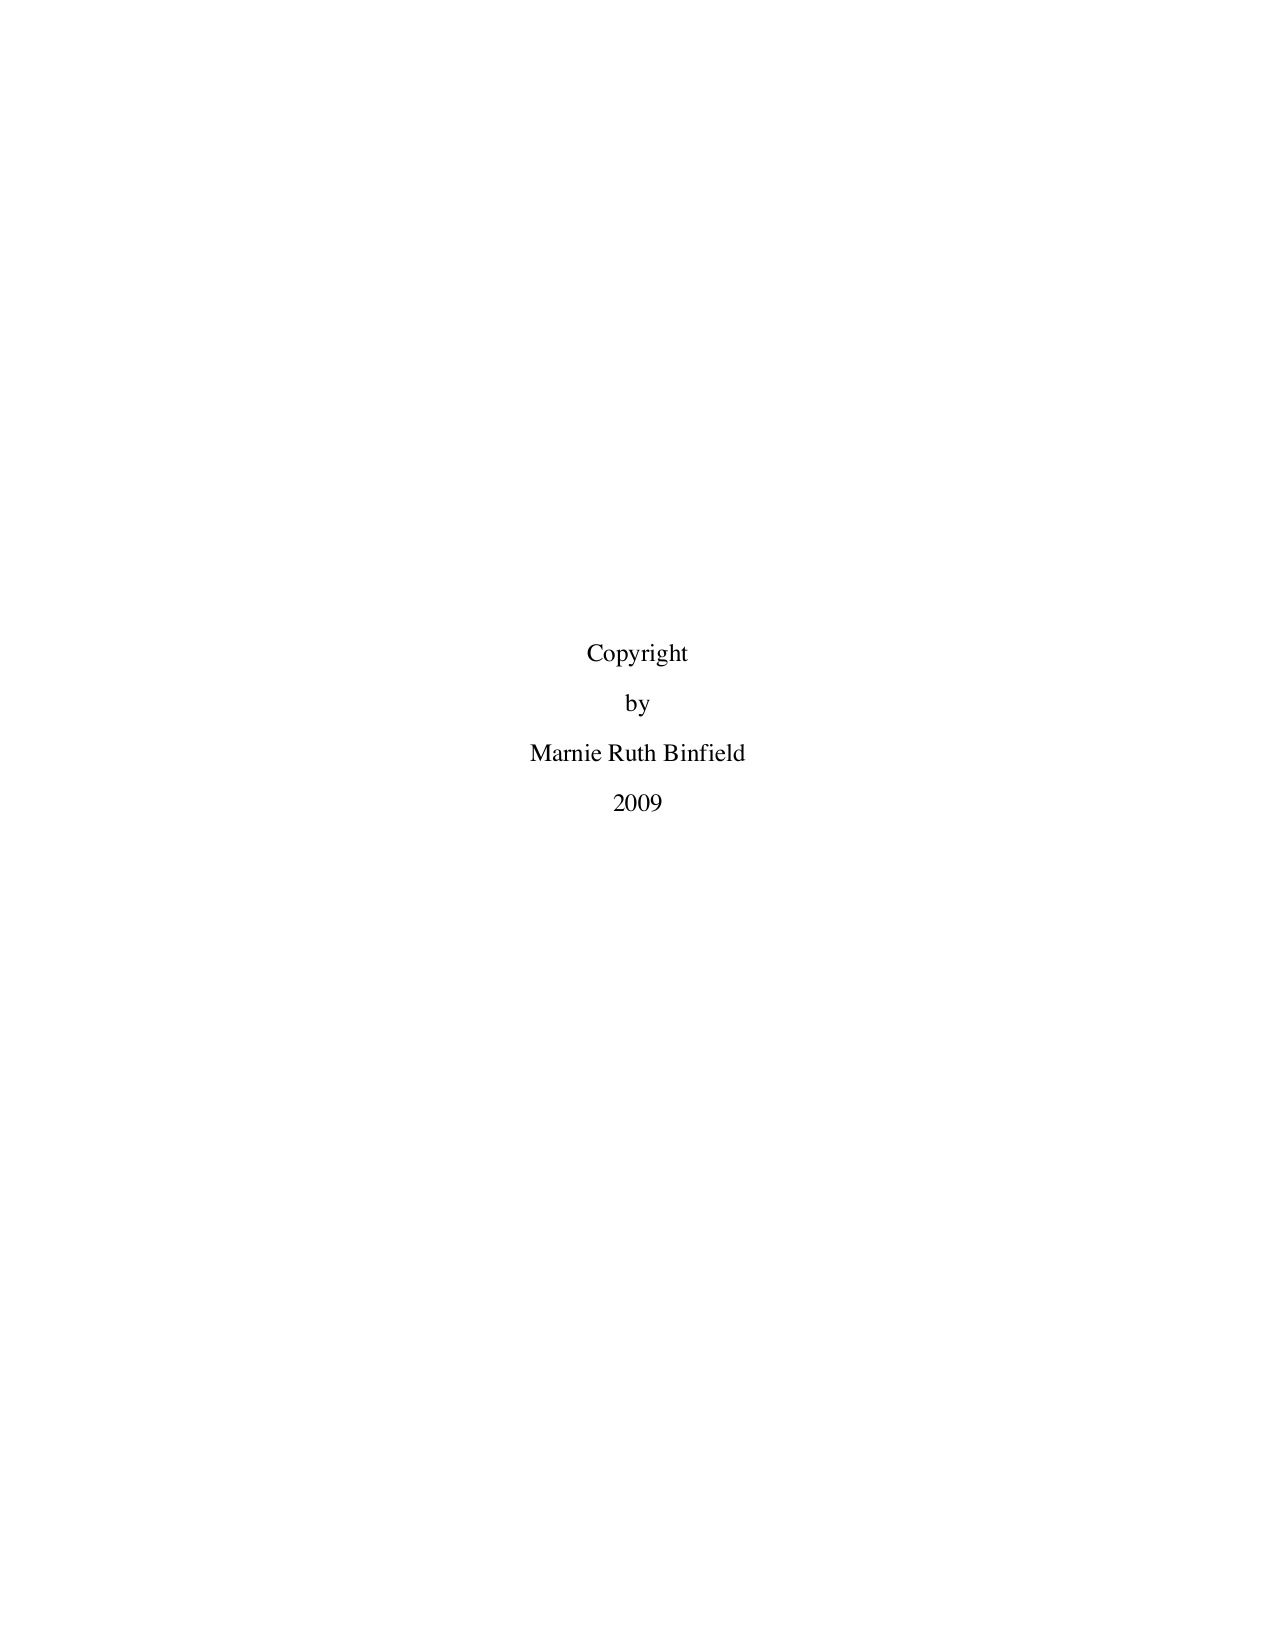 pdf for Lenoxx Boombox CD-102 manual